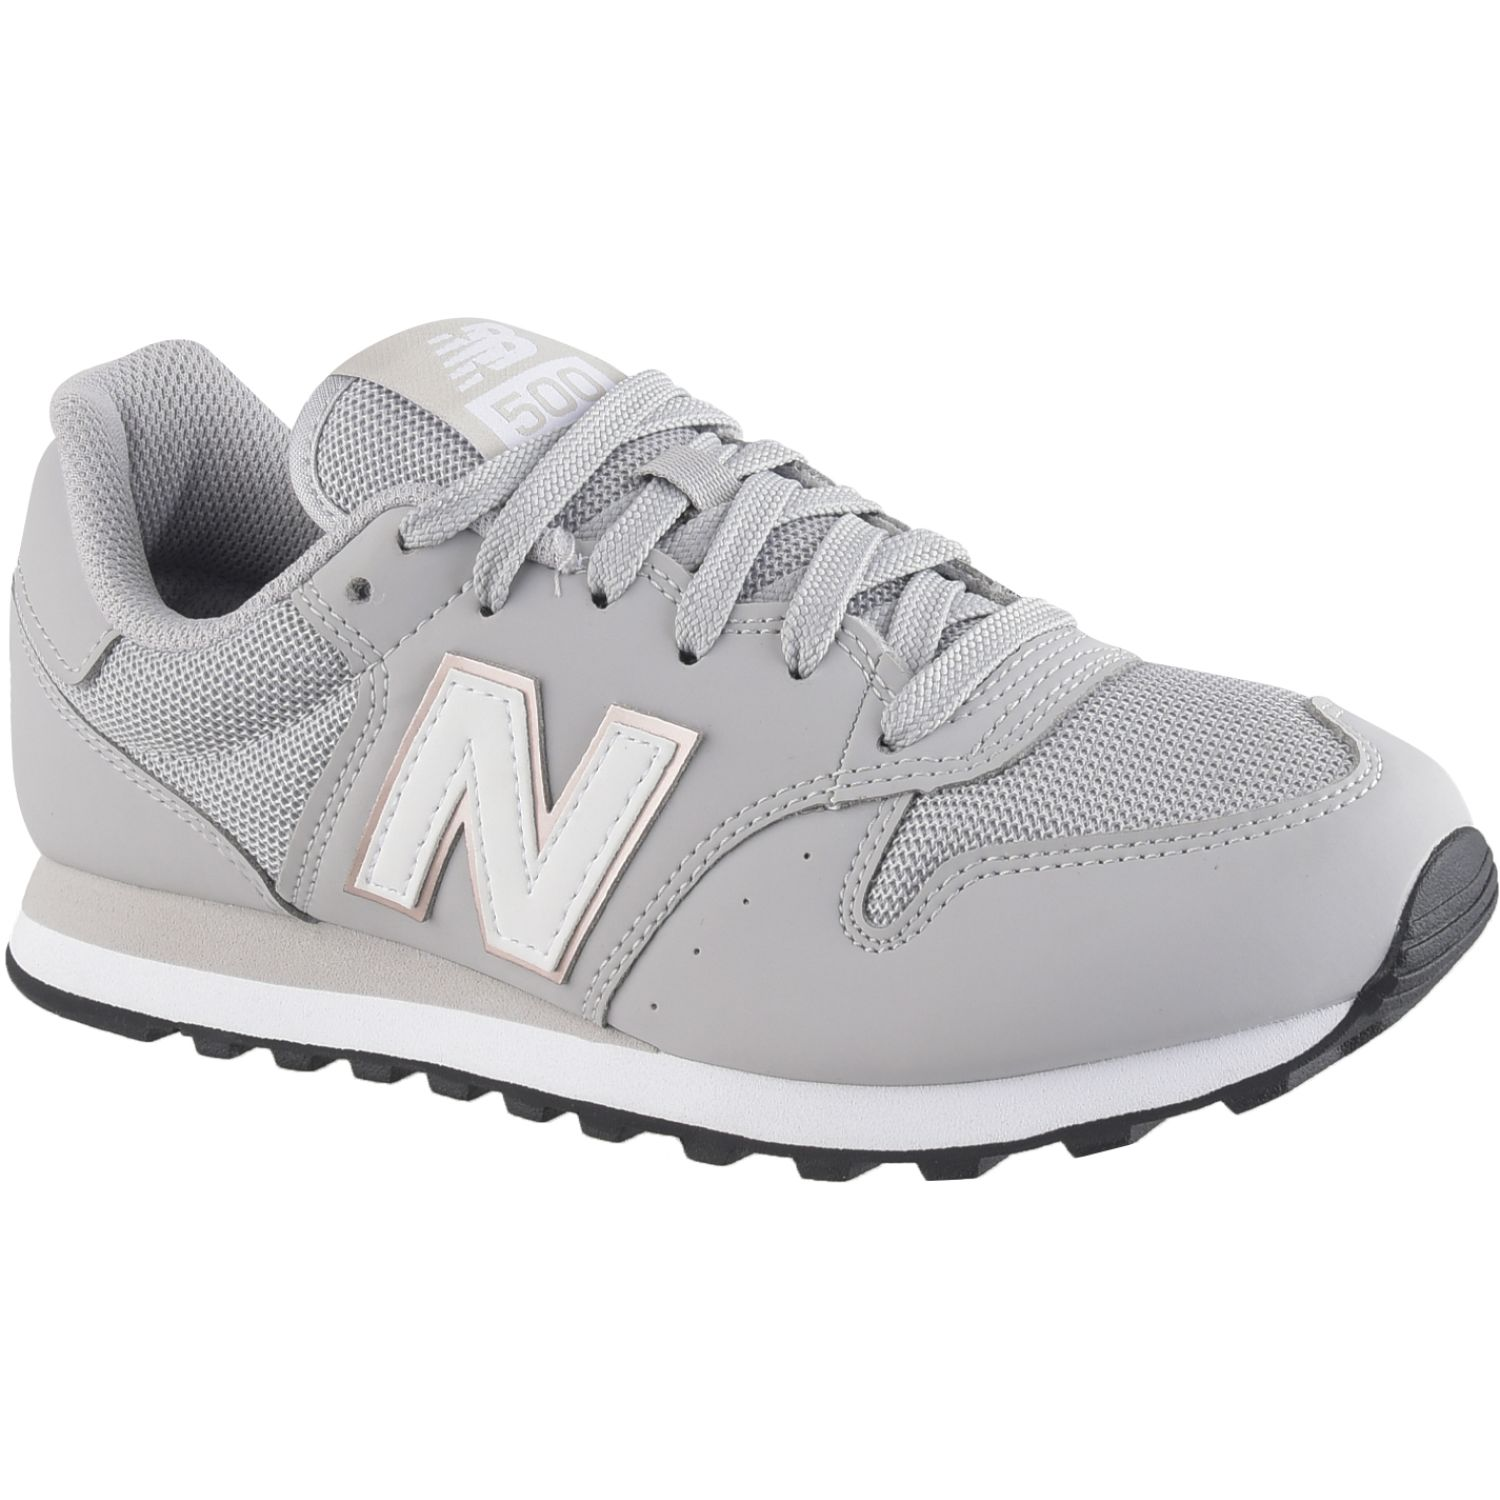 New Balance 500 Gris / blanco Walking